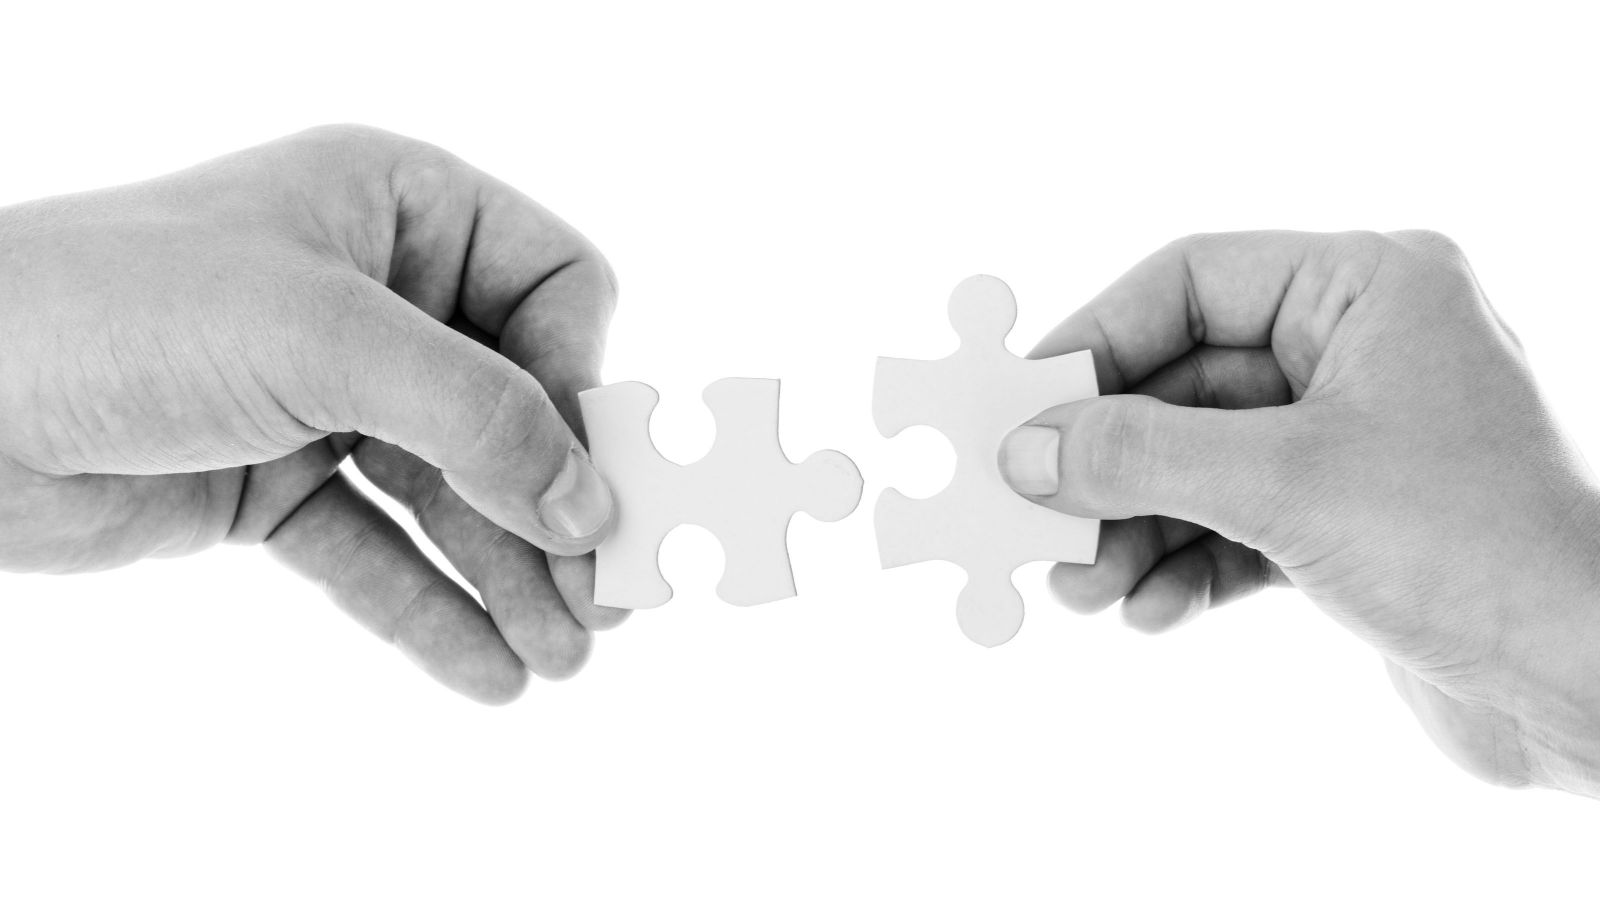 puzzle pieces connecting together